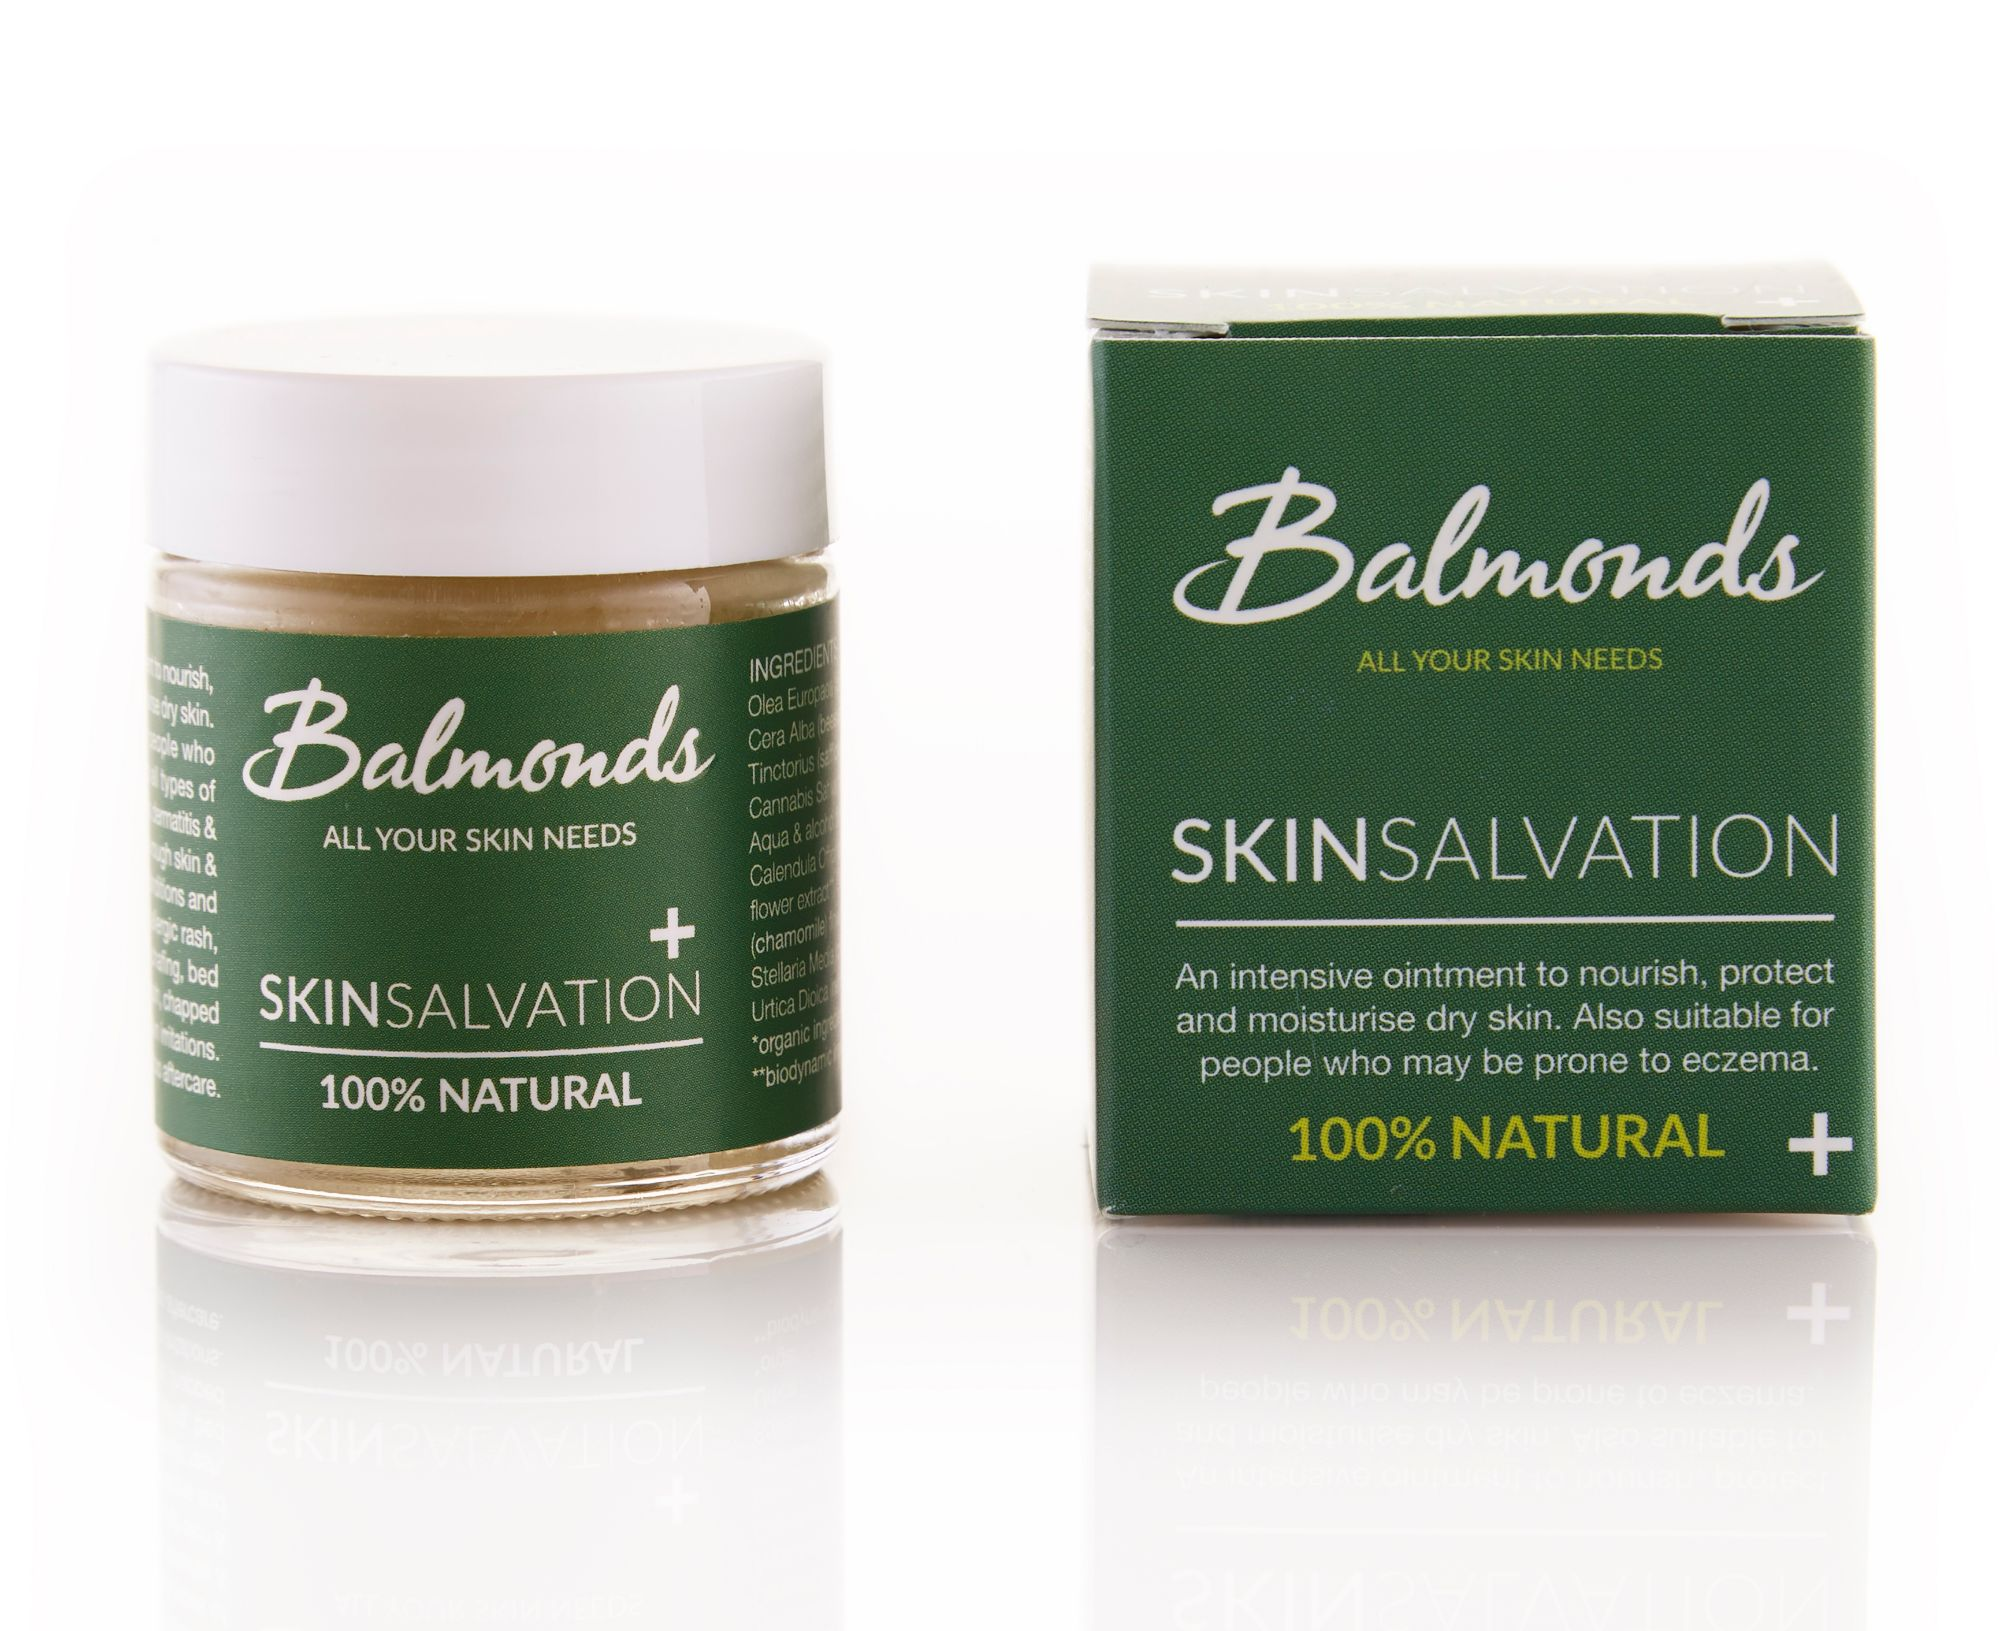 Balmonds 100% natural Skin Salvation